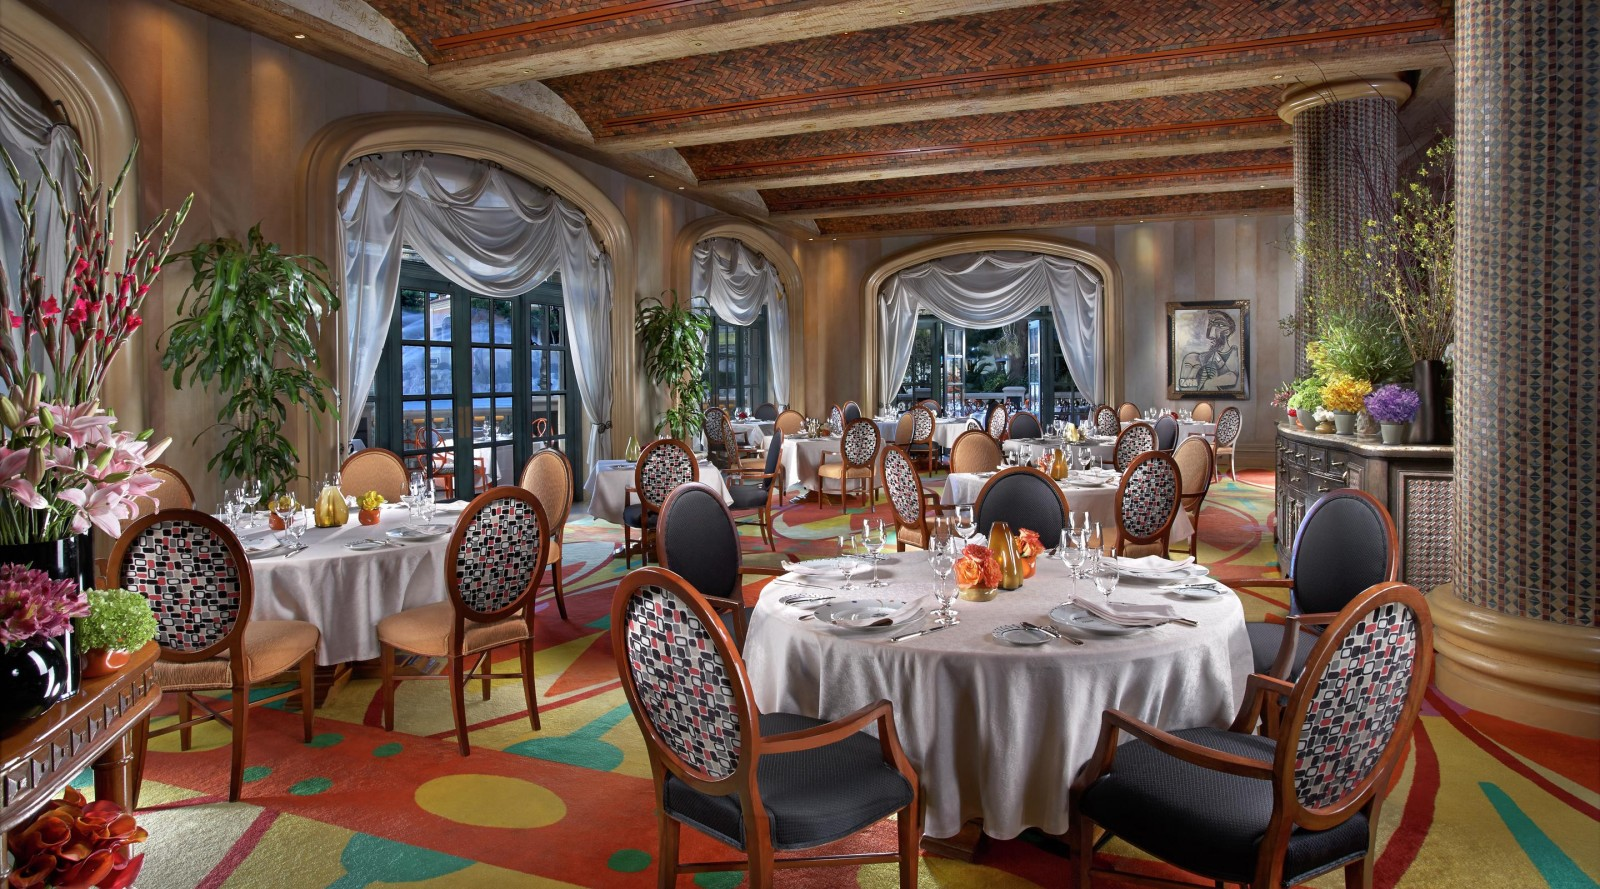 Bellagio livinator - Las vegas restaurants with private dining rooms ...